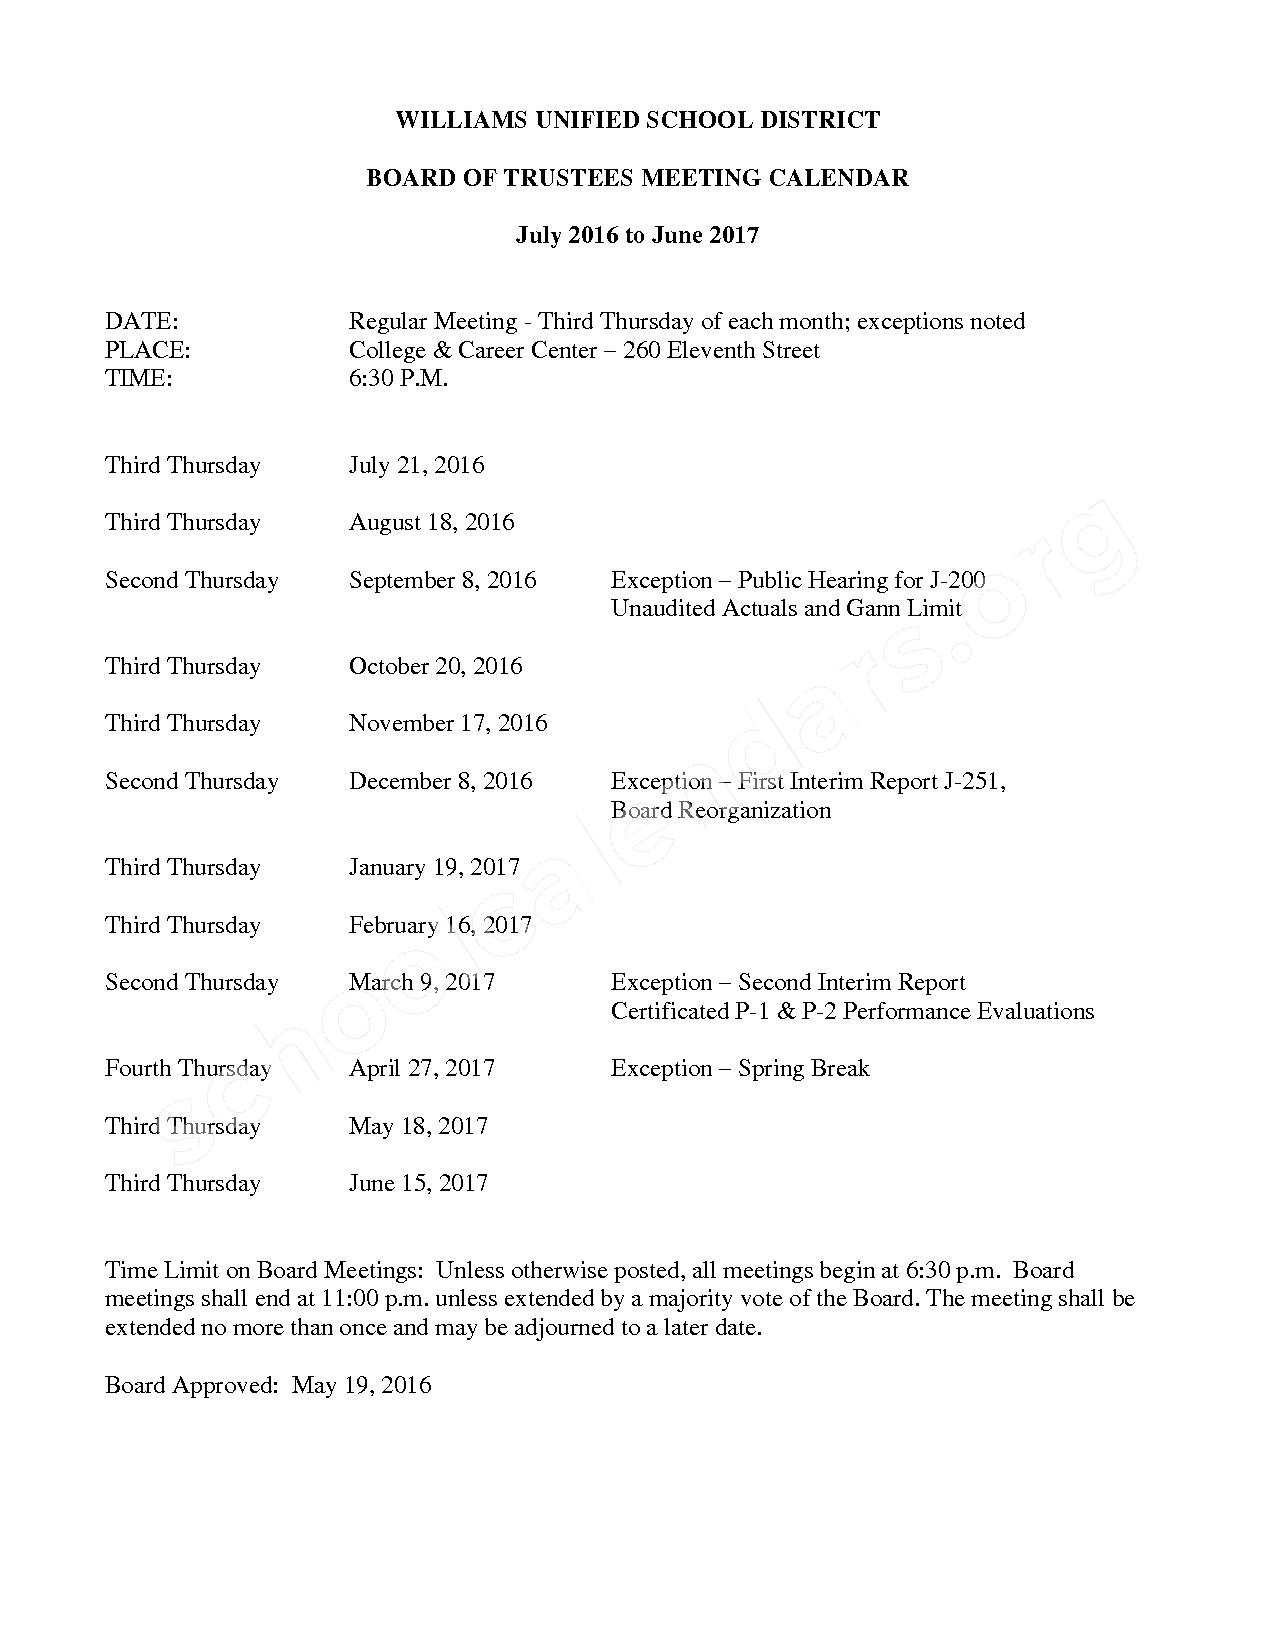 2016 - 2017 Board of Trustee Calendar – Williams Unified School District – page 1